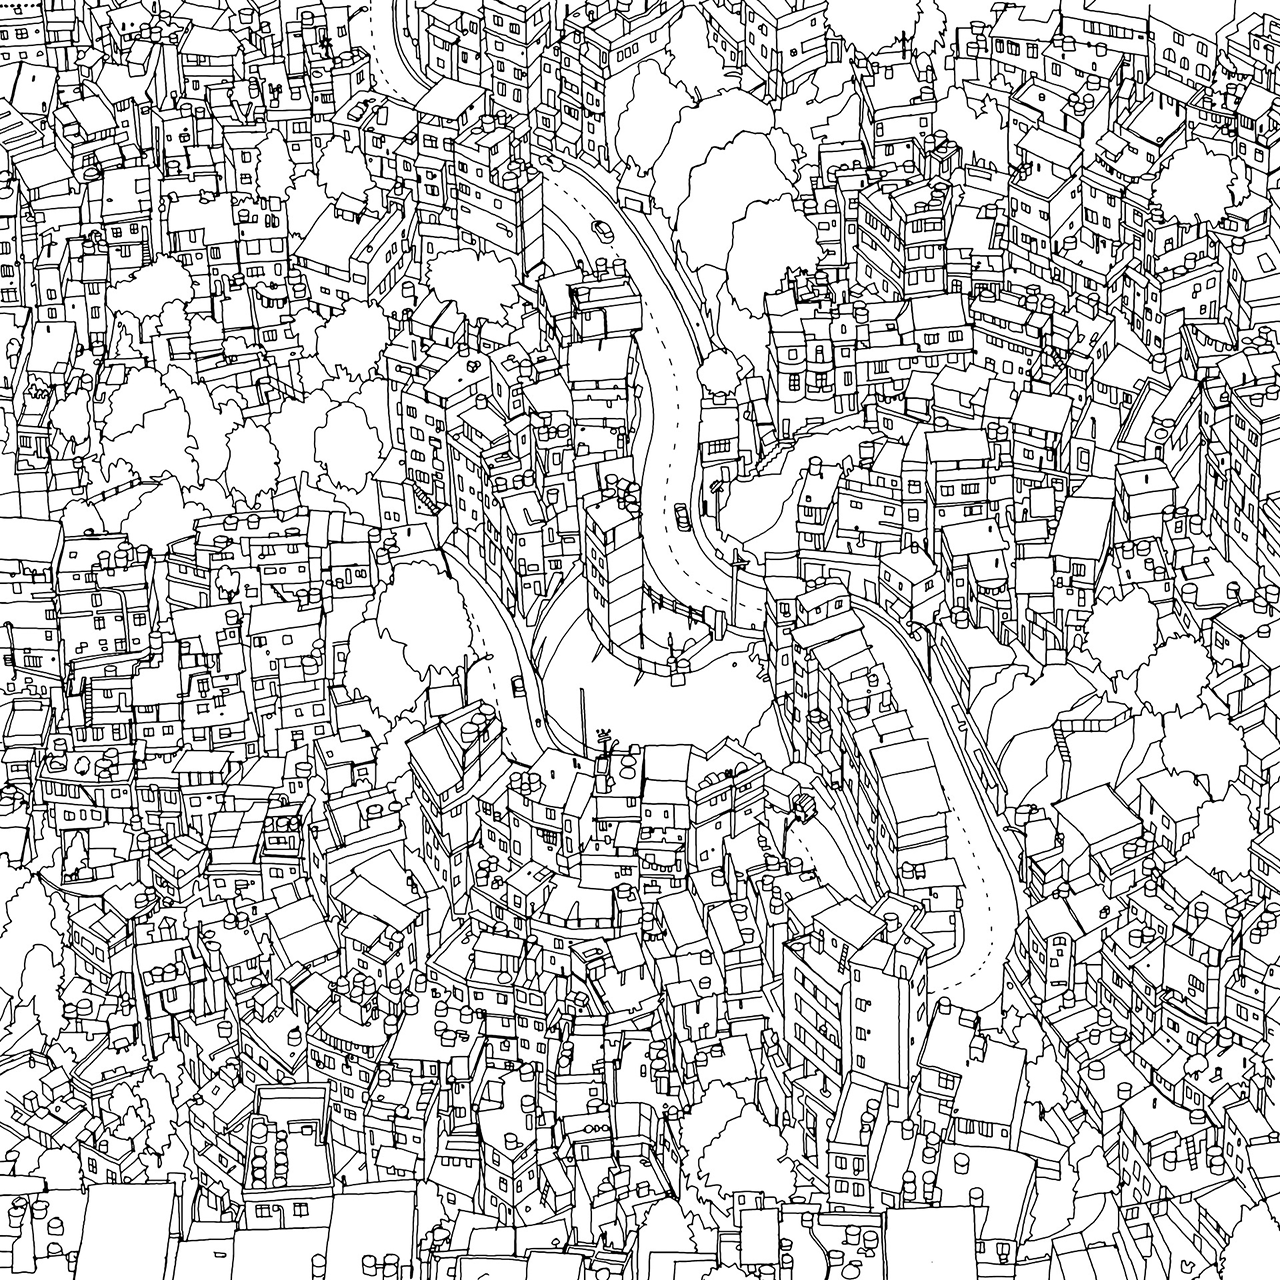 Rocinha Favela Rio De Janeiro Fantastic Cities The Most Intricate All Ages Colouring Book Yet